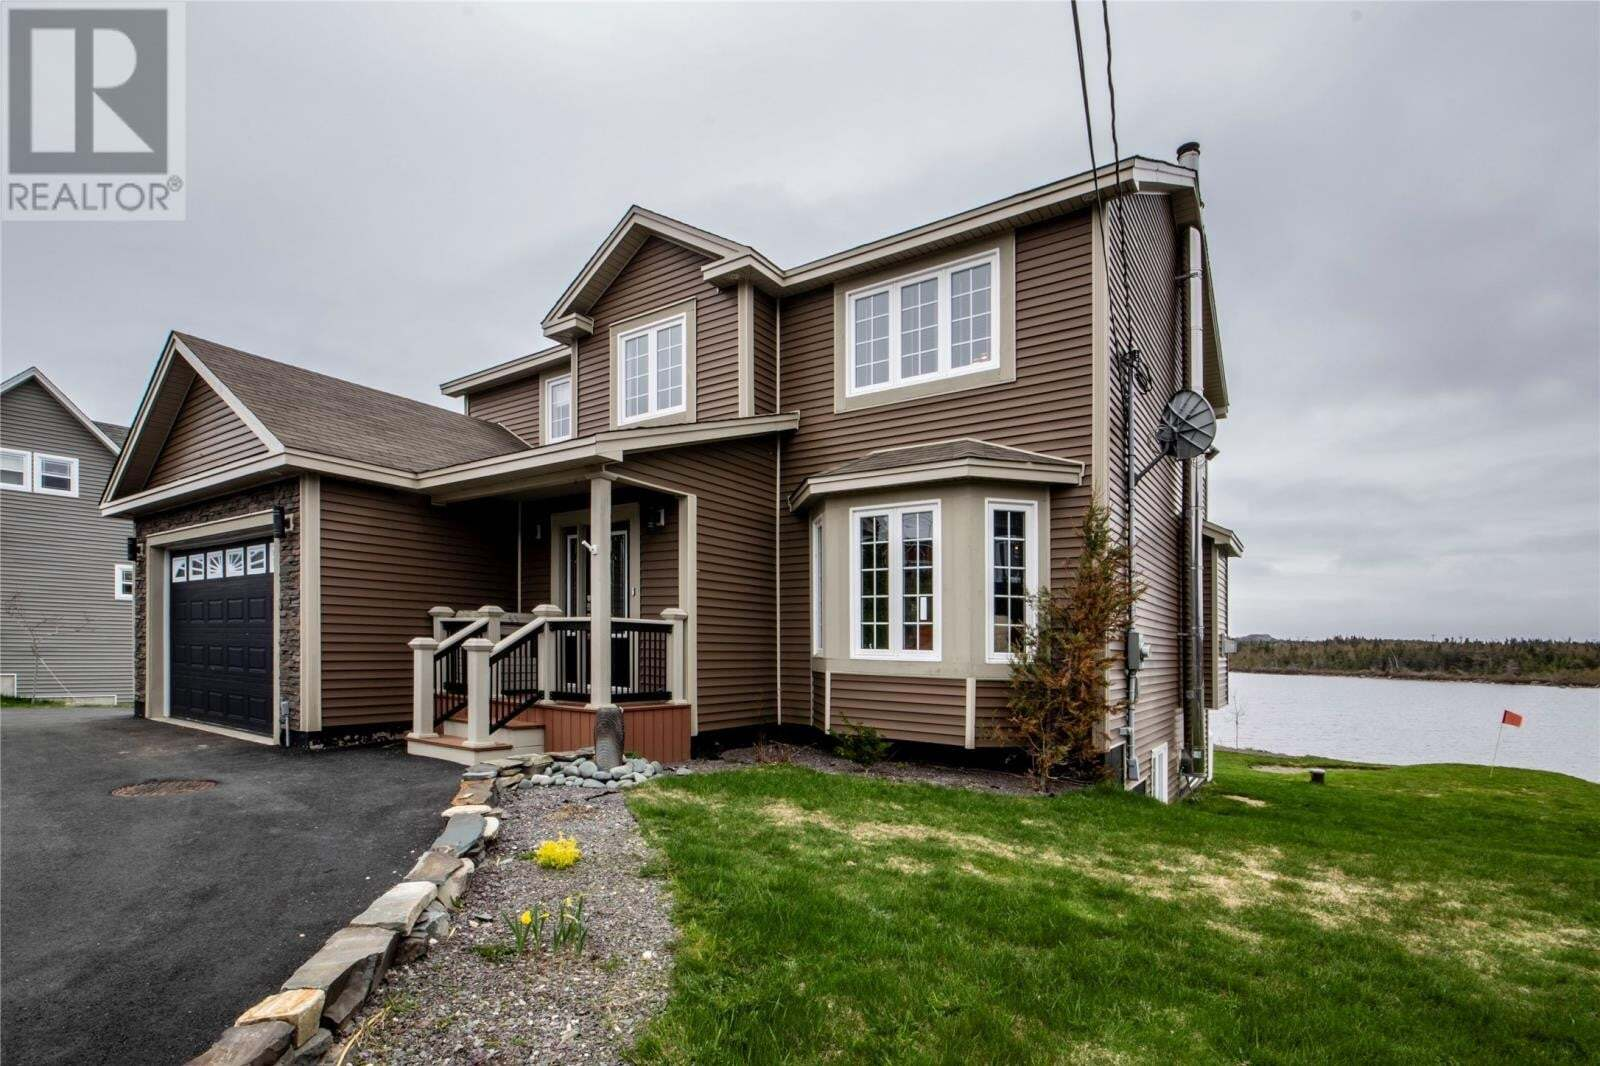 House for sale at 63 Island Cove Rd Bay Bulls Newfoundland - MLS: 1214622